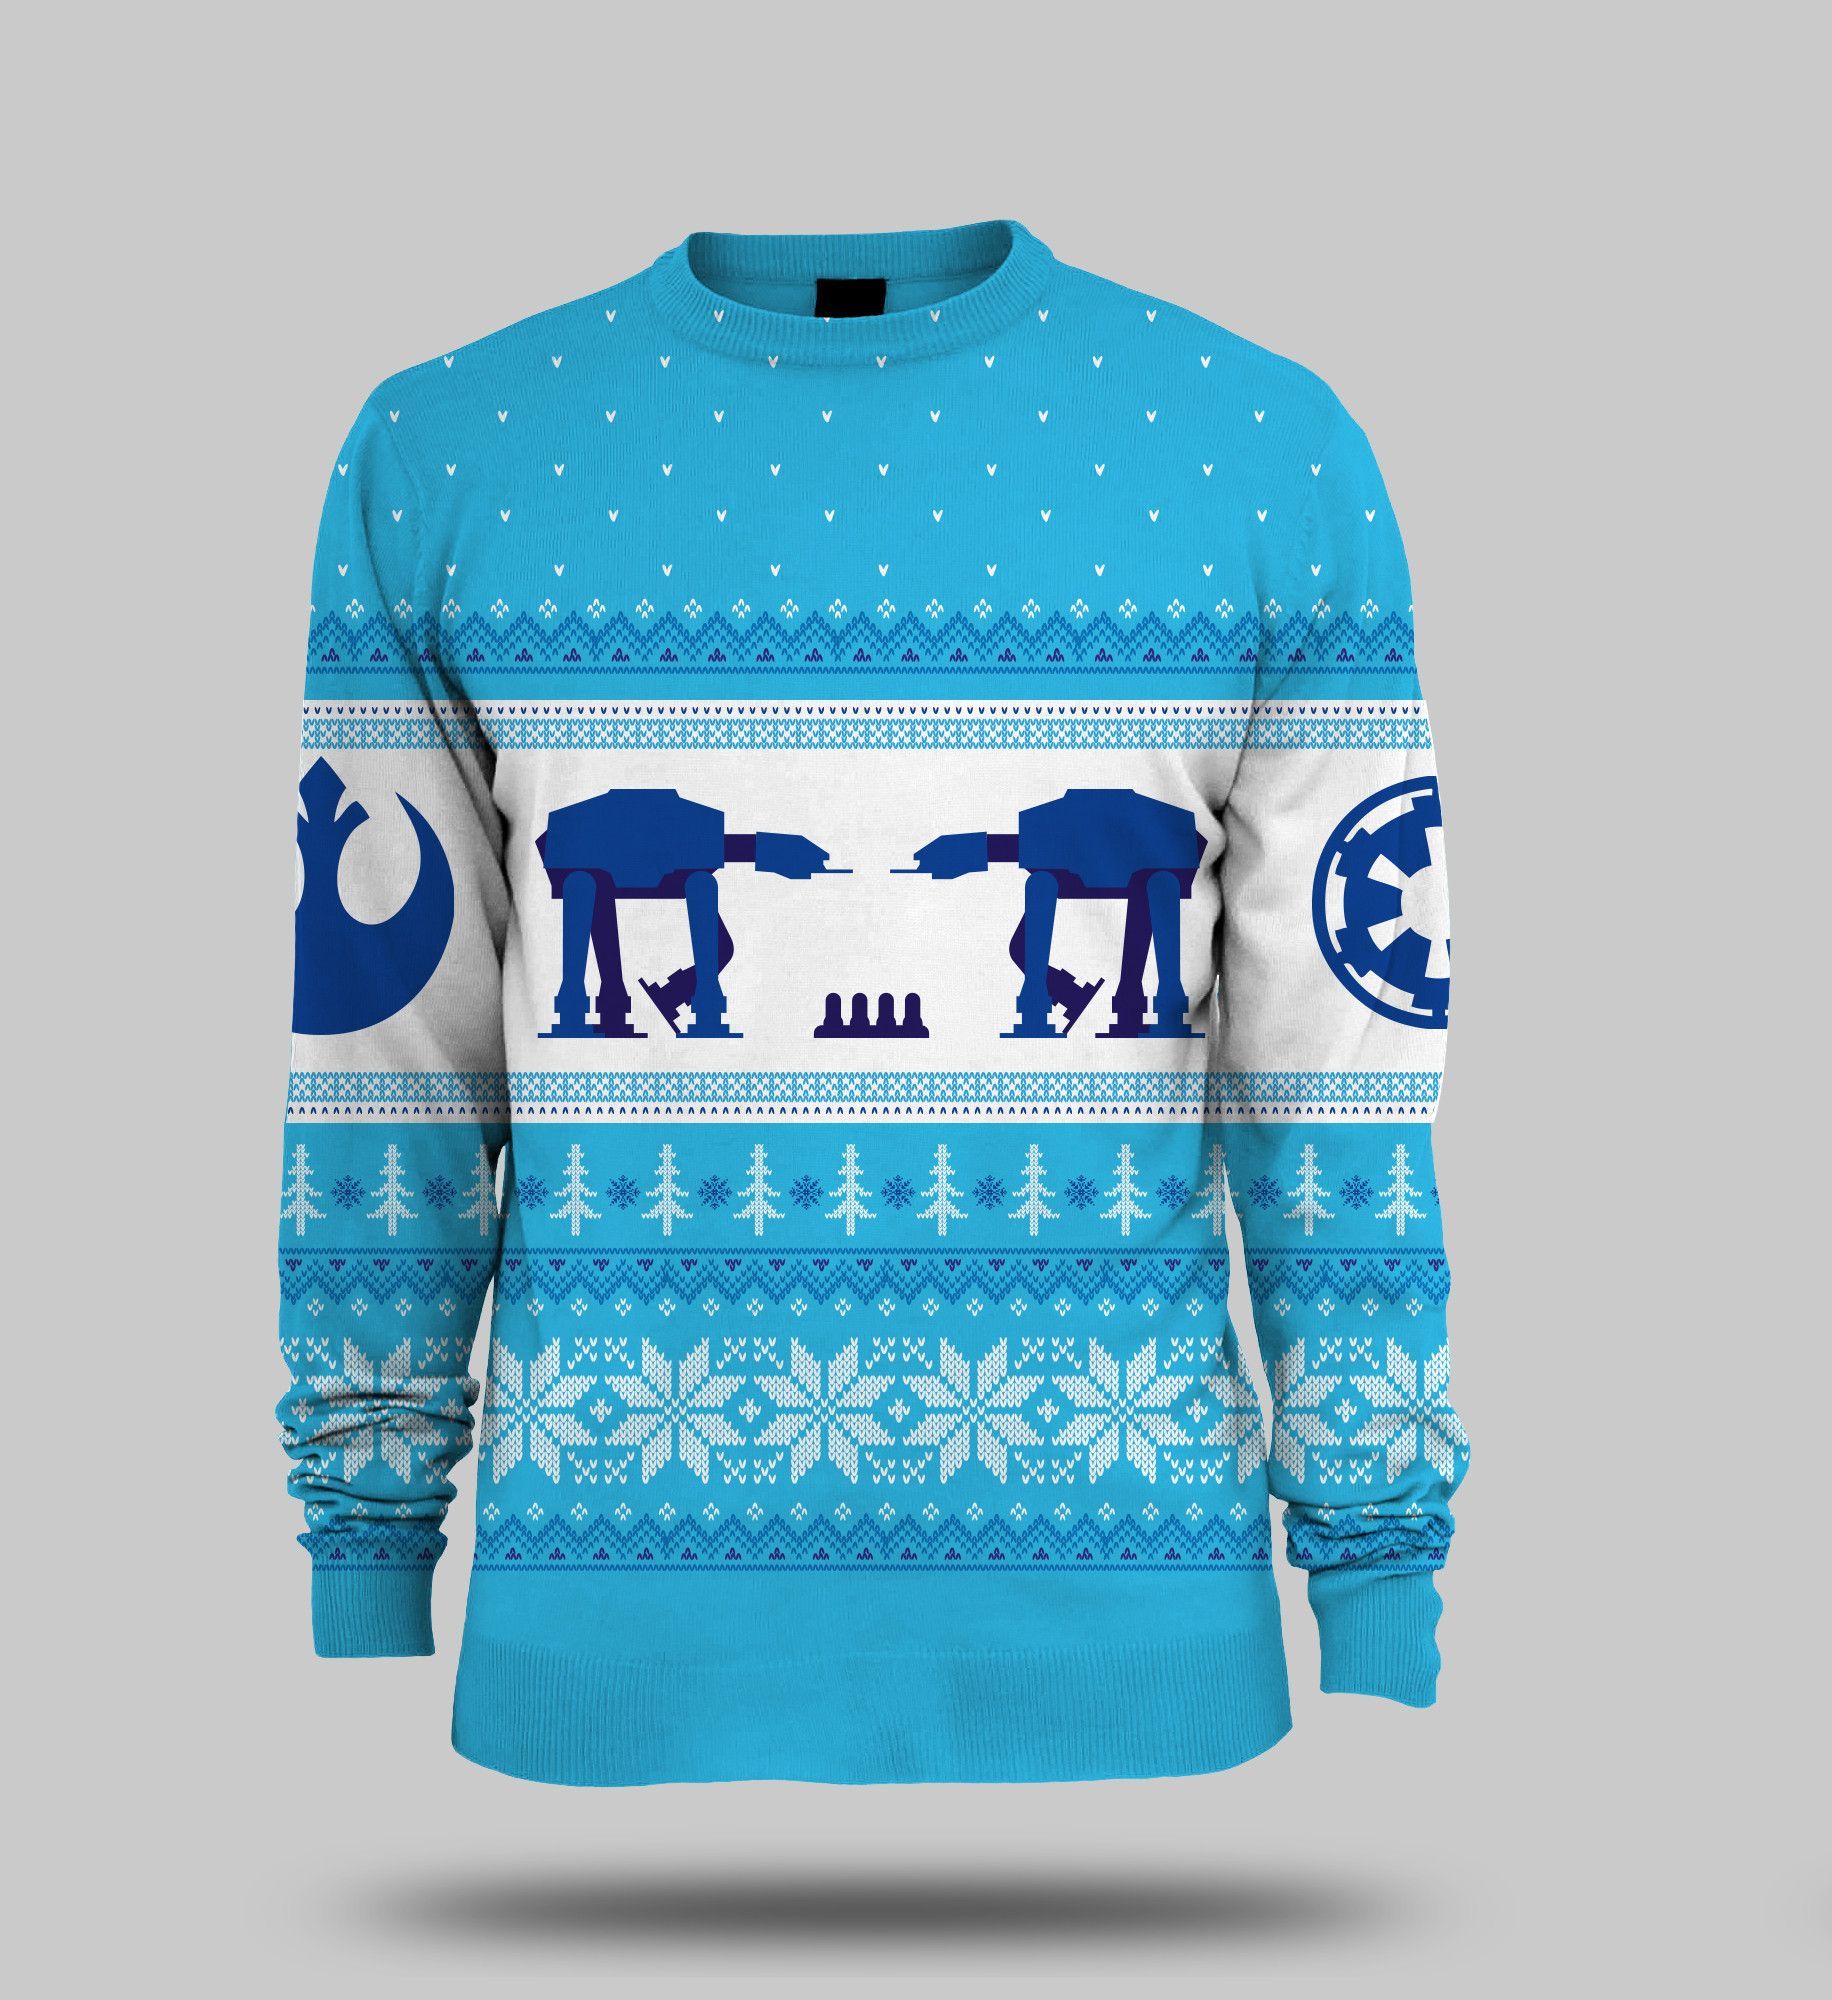 Star Wars AT-AT Christmas Jumper – MerchandiseMonkey | design ...